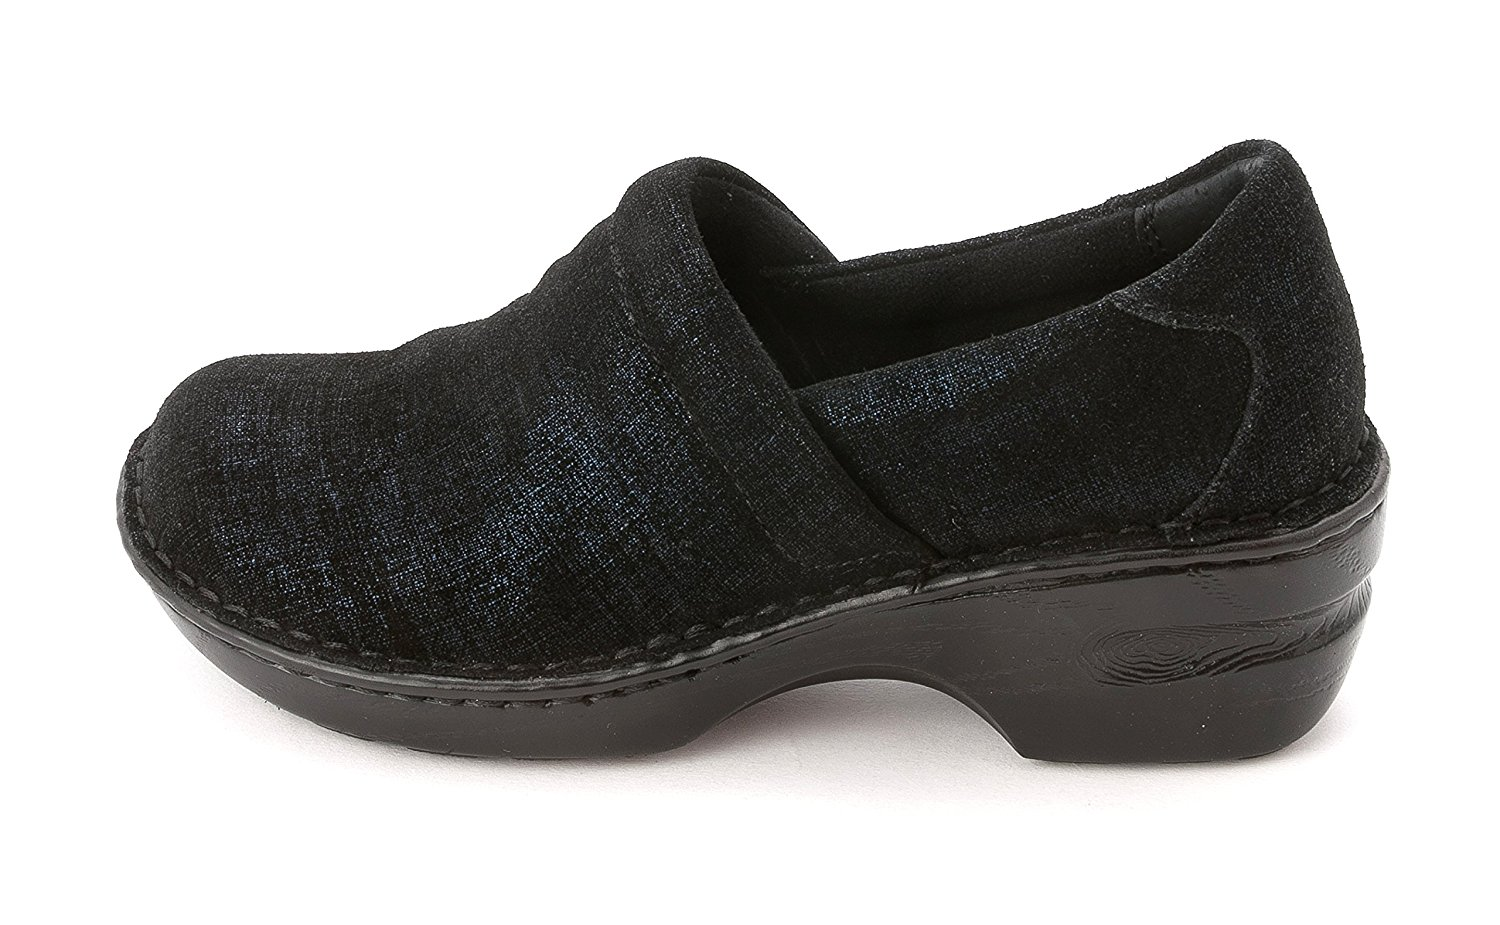 9bab4d74f2616 Get Quotations · BOC Born Concept Margaret Navy Twinkle Metallic Suede  Clogs Women Size 9 M